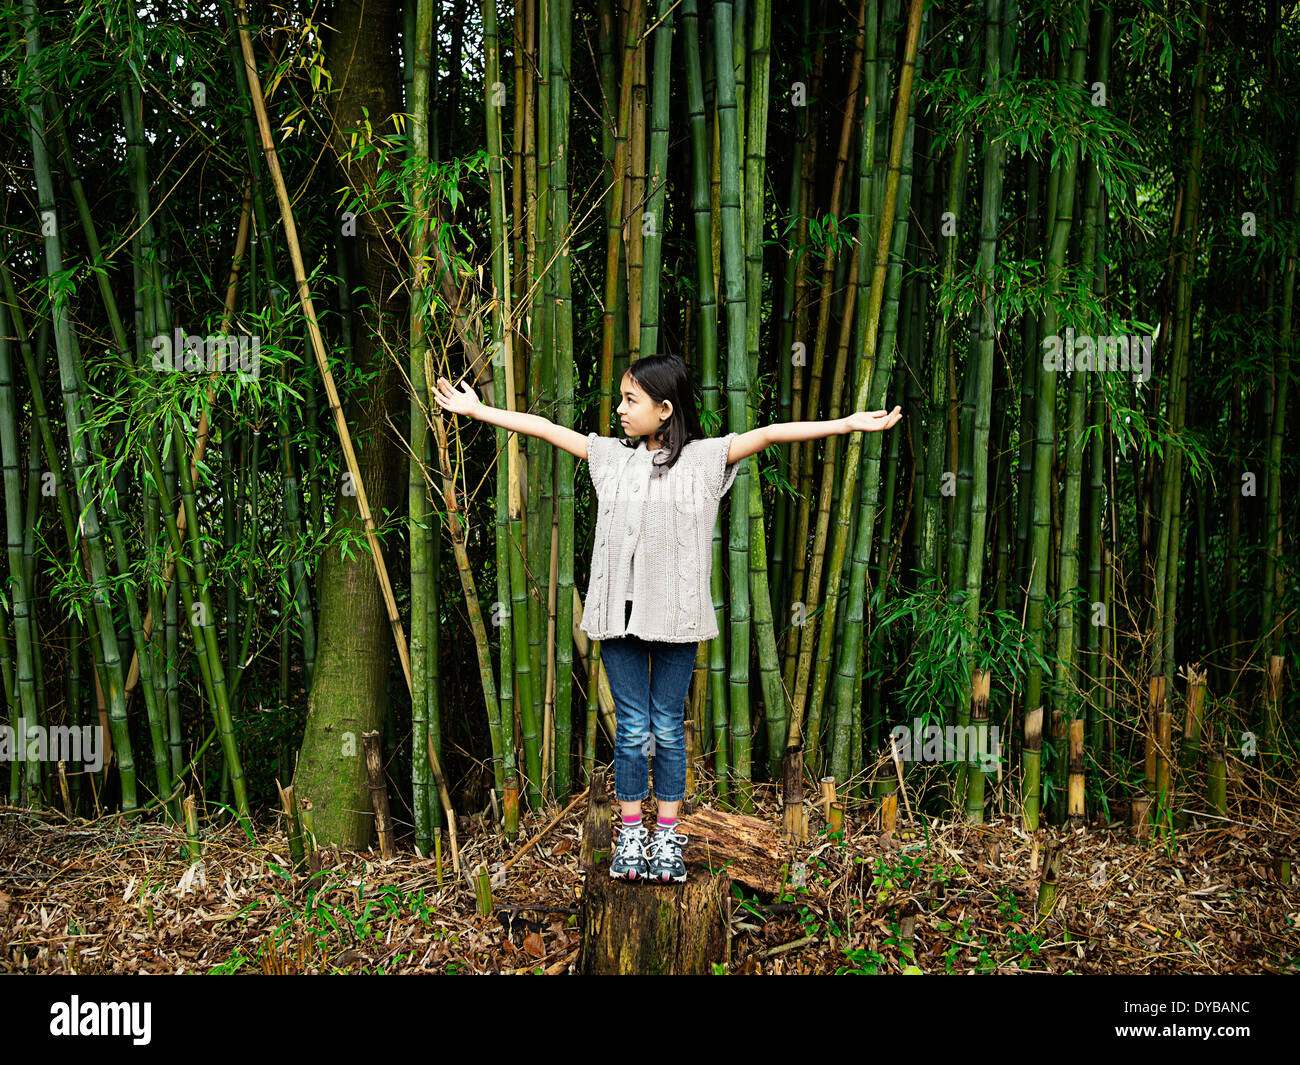 Girl stands on tree stump in stand of bamboo - Stock Image